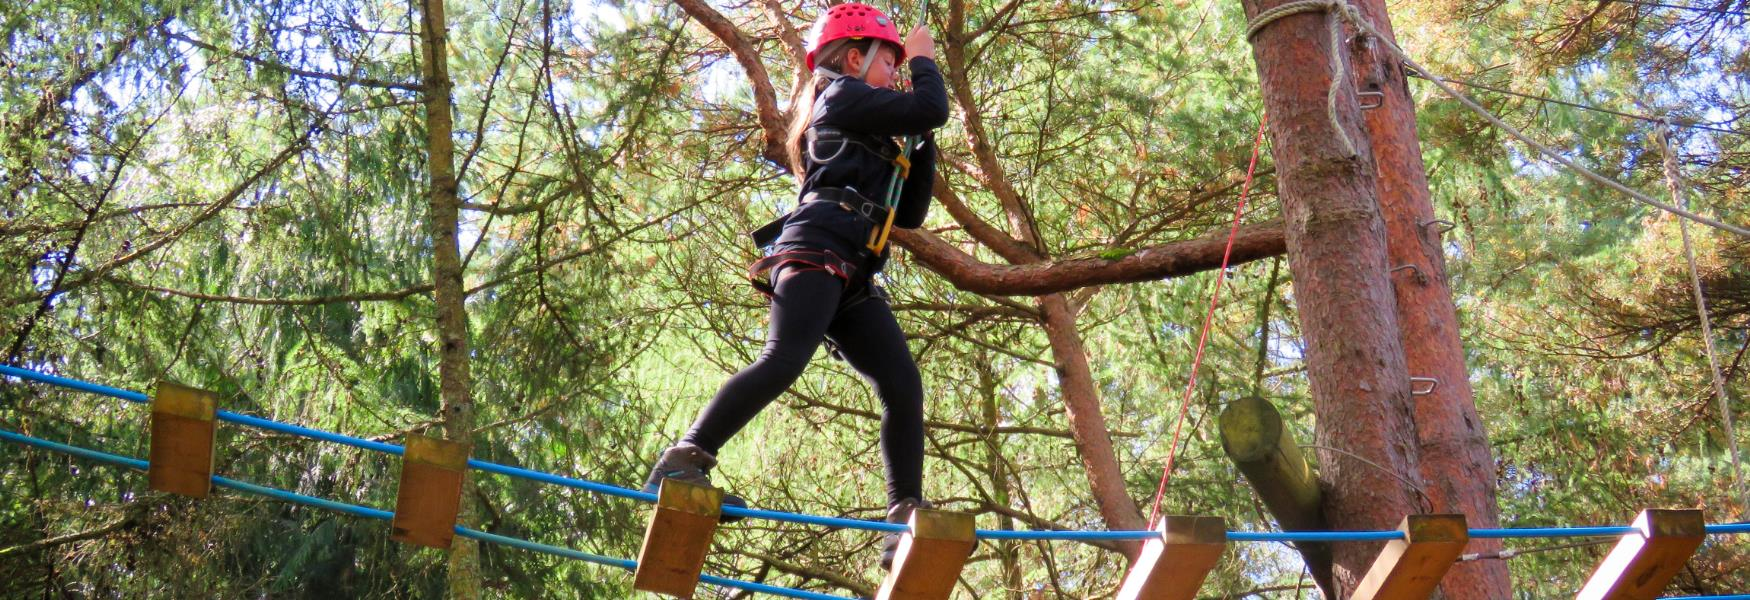 tree top climbing activity at go ape in the new forest